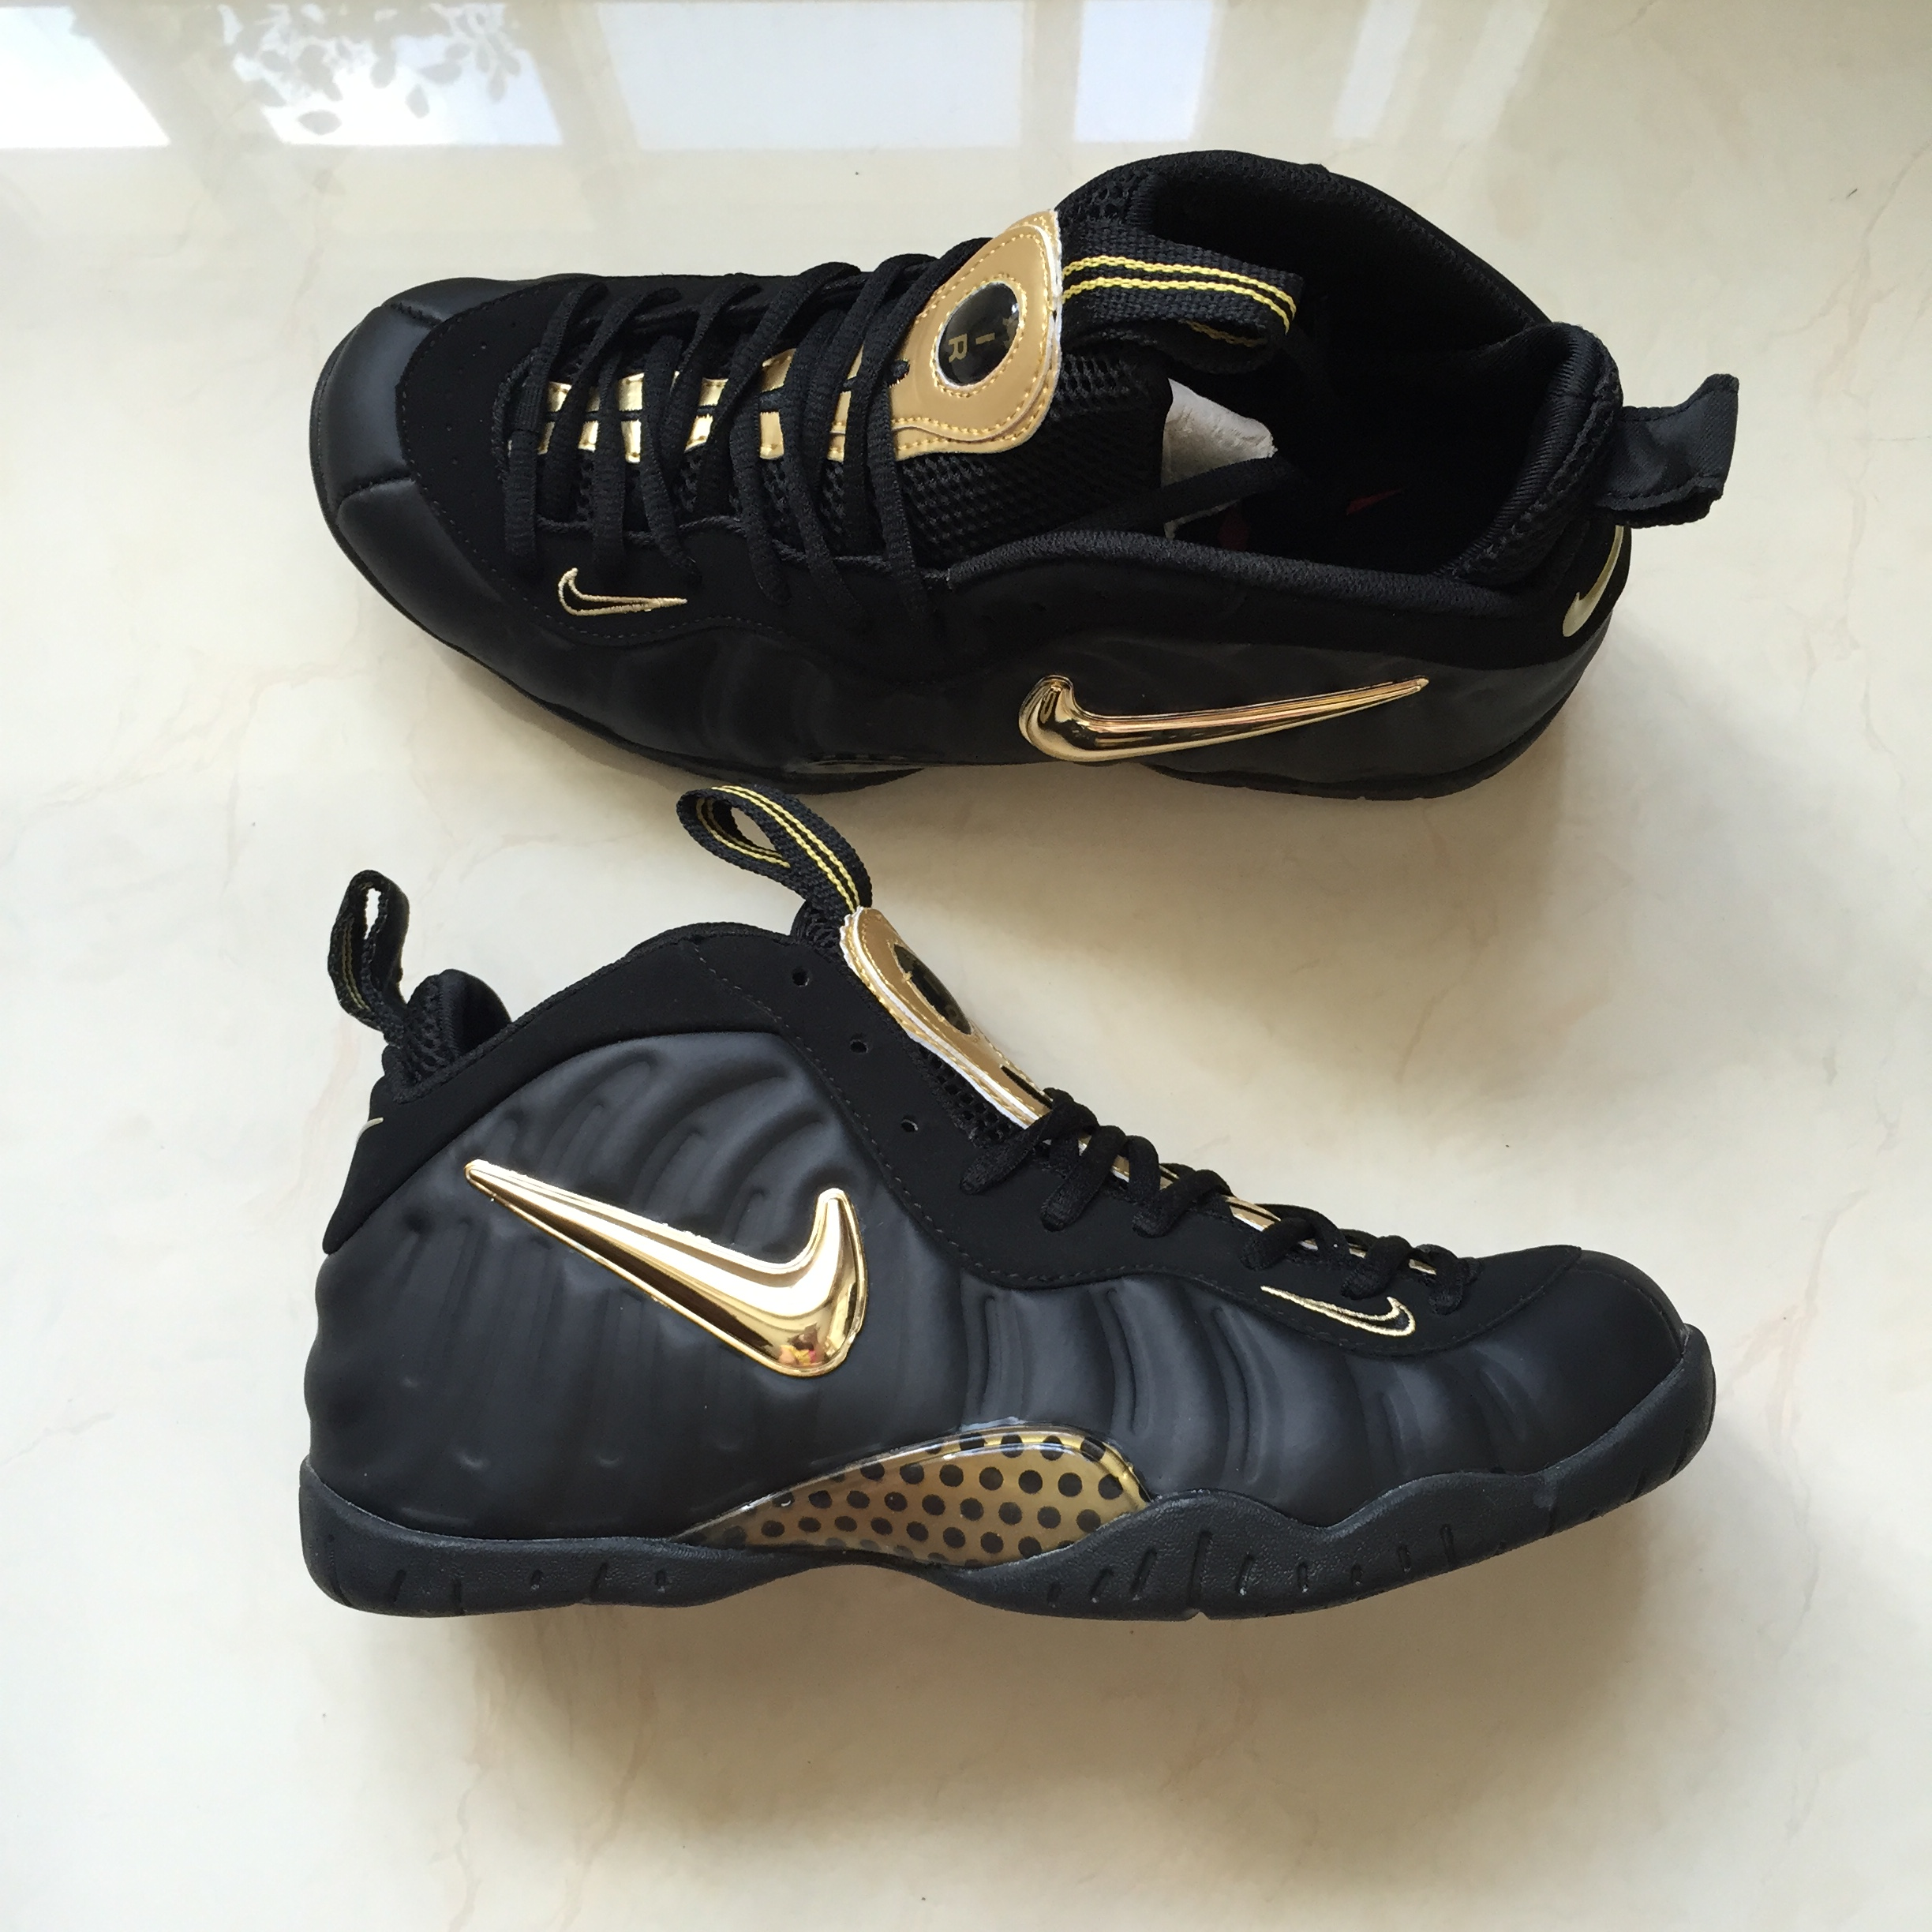 New Nike Air Foamposite Pro Black Gold Shoes